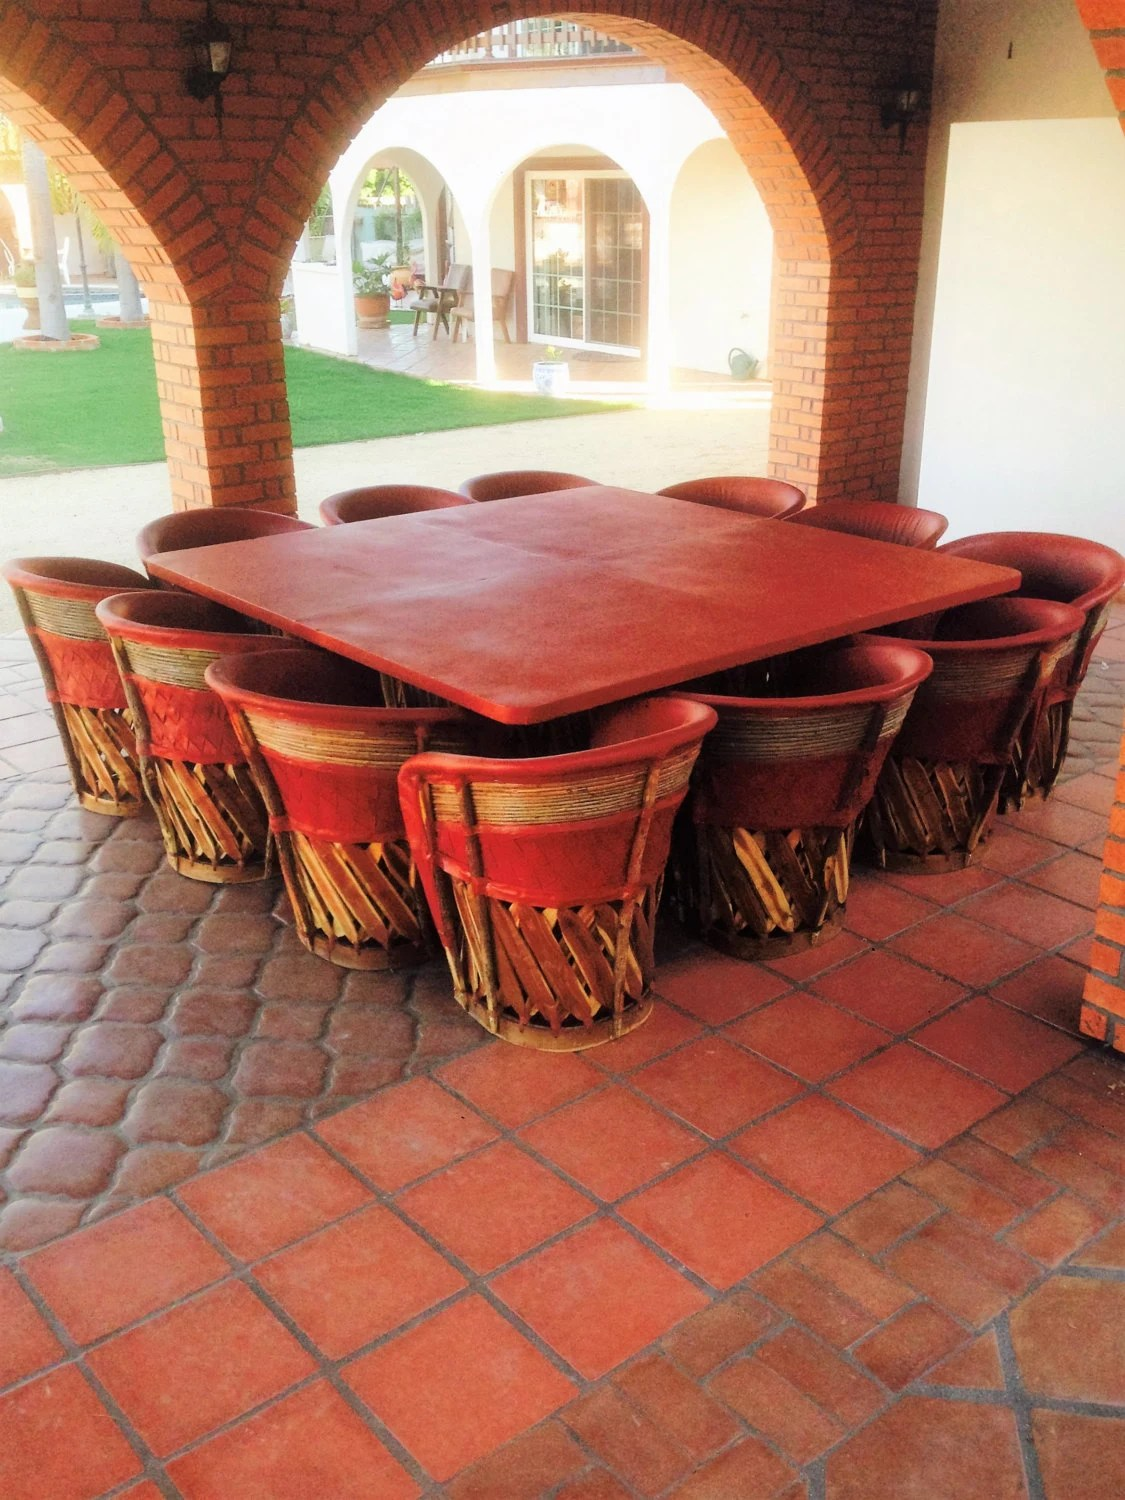 rustic outdoor chairs resin adirondack lowes items similar to dining set with large table & 12 chairs, equipales, mexican furniture ...